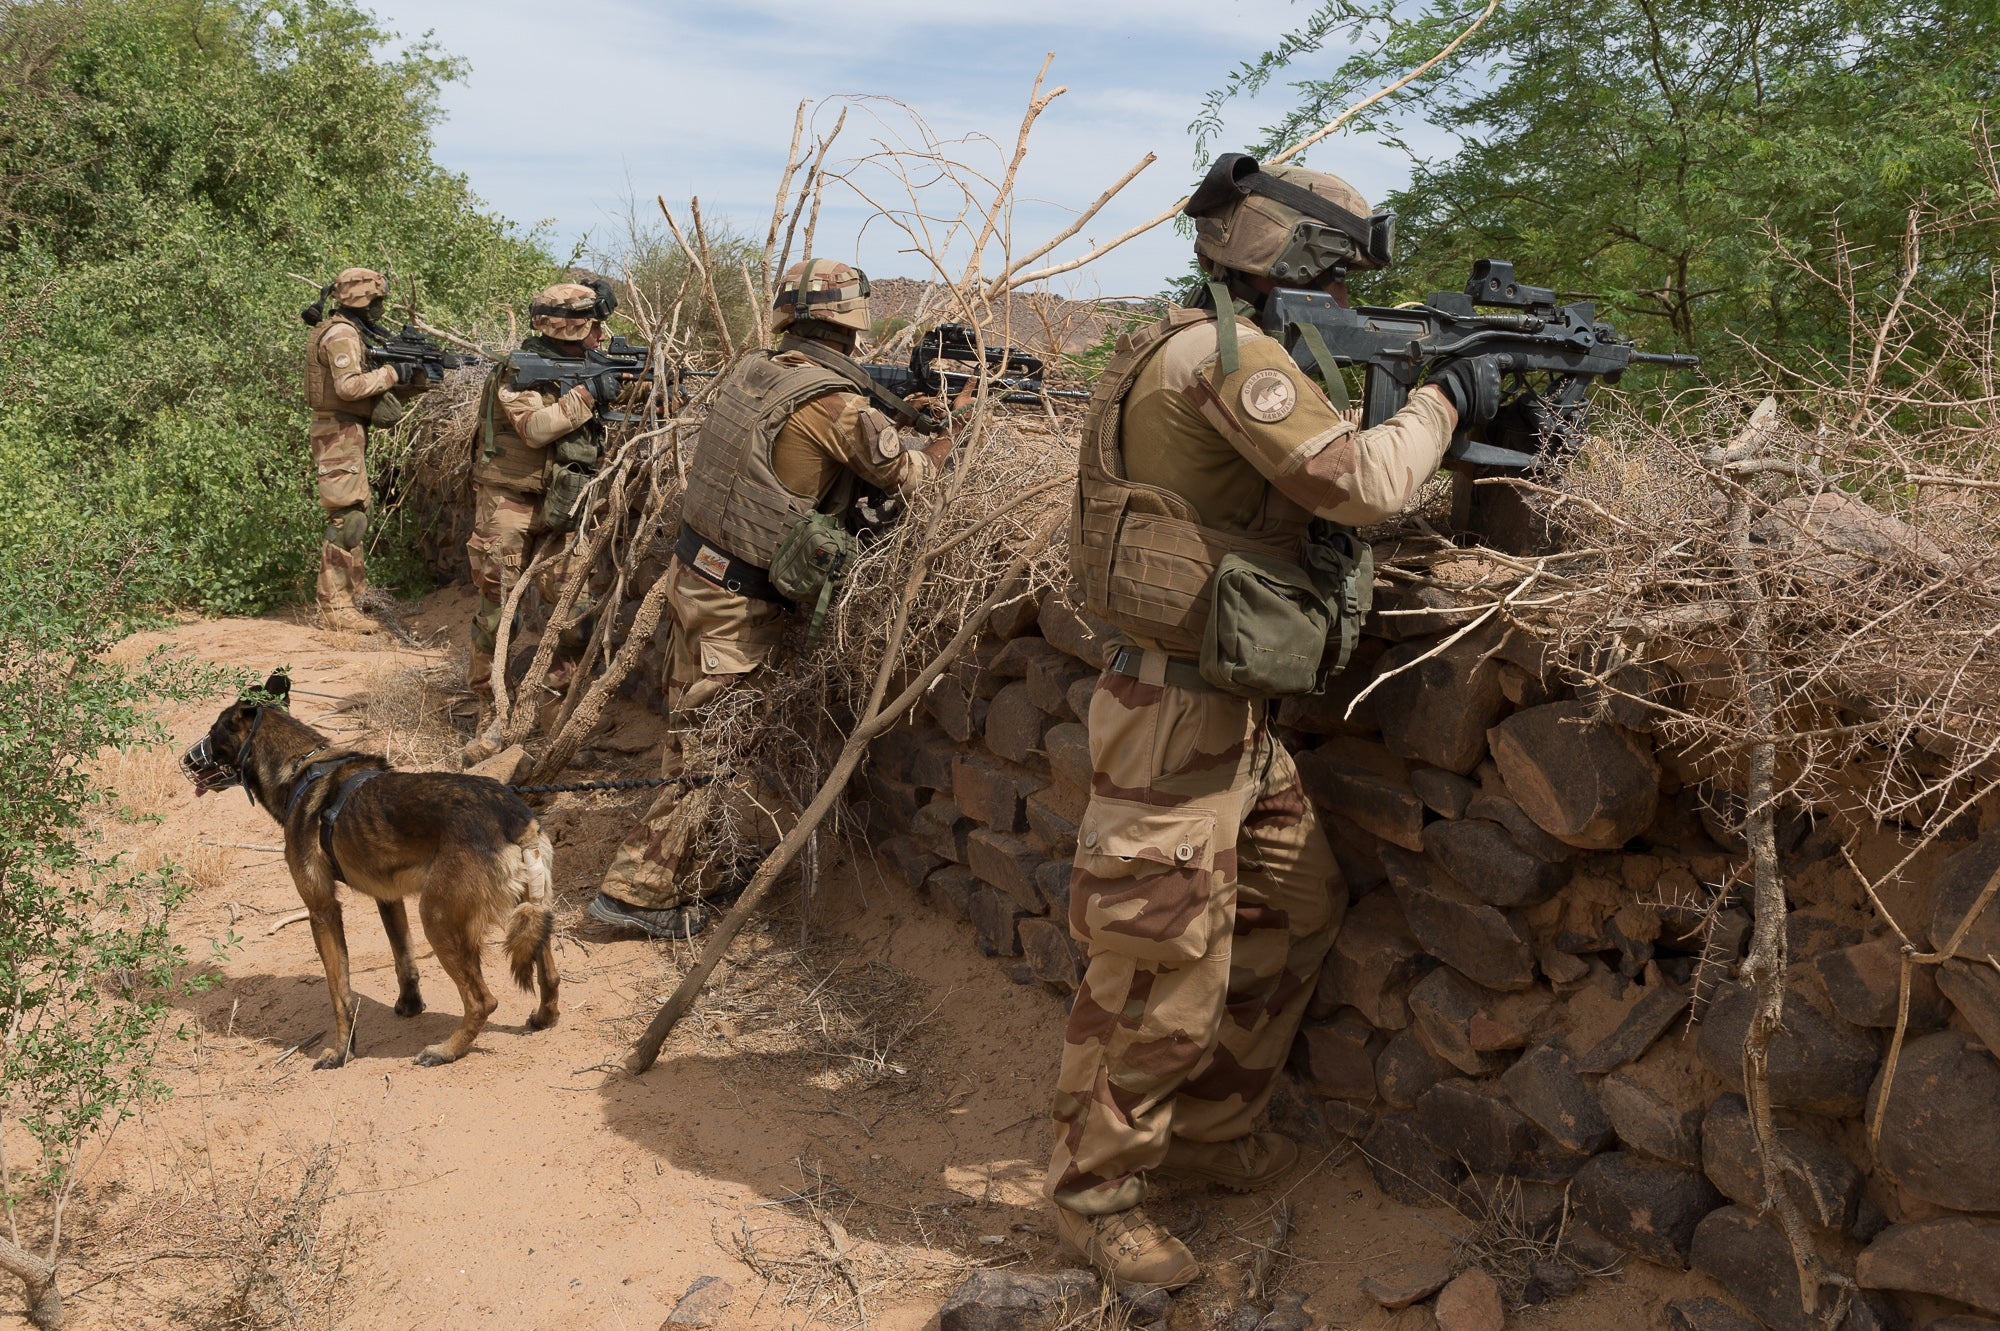 French military kills senior Al Qaeda leader in Mali